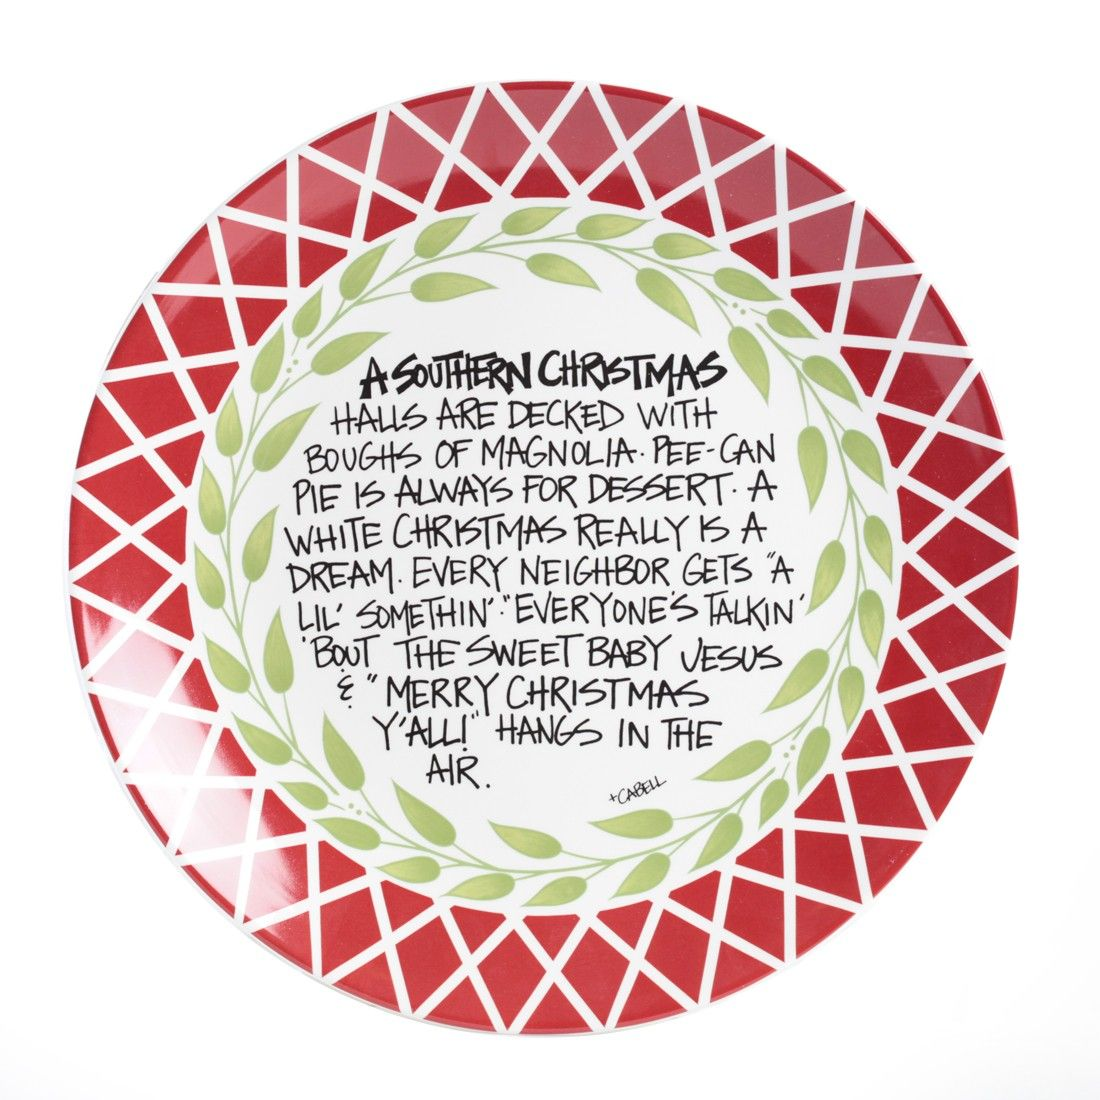 What is a Southern Christmas? The halls are decked with boughs of ...